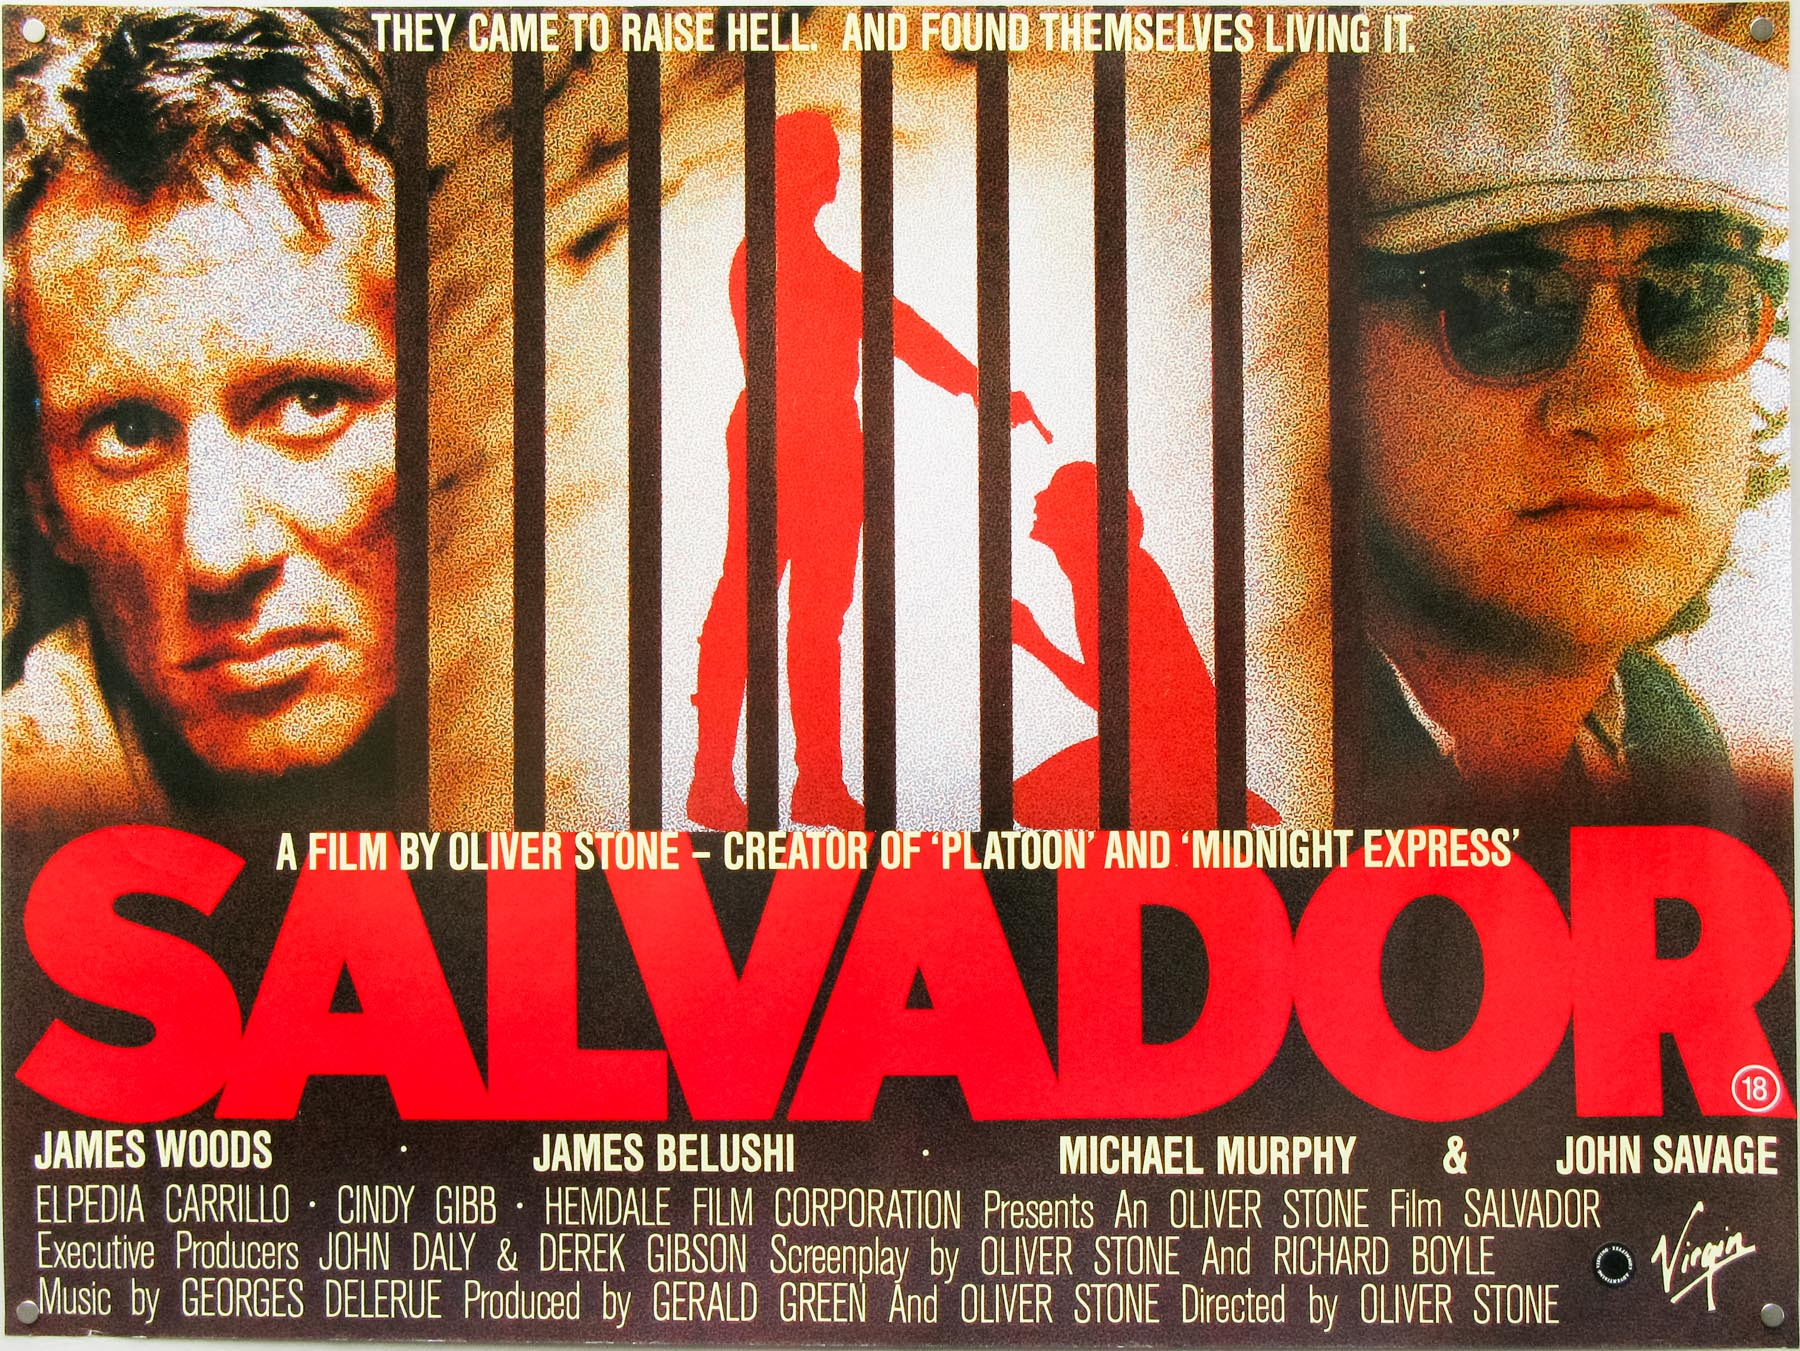 Salvador (1986), written (with Richard Boyle) and directed by Oliver Stone.